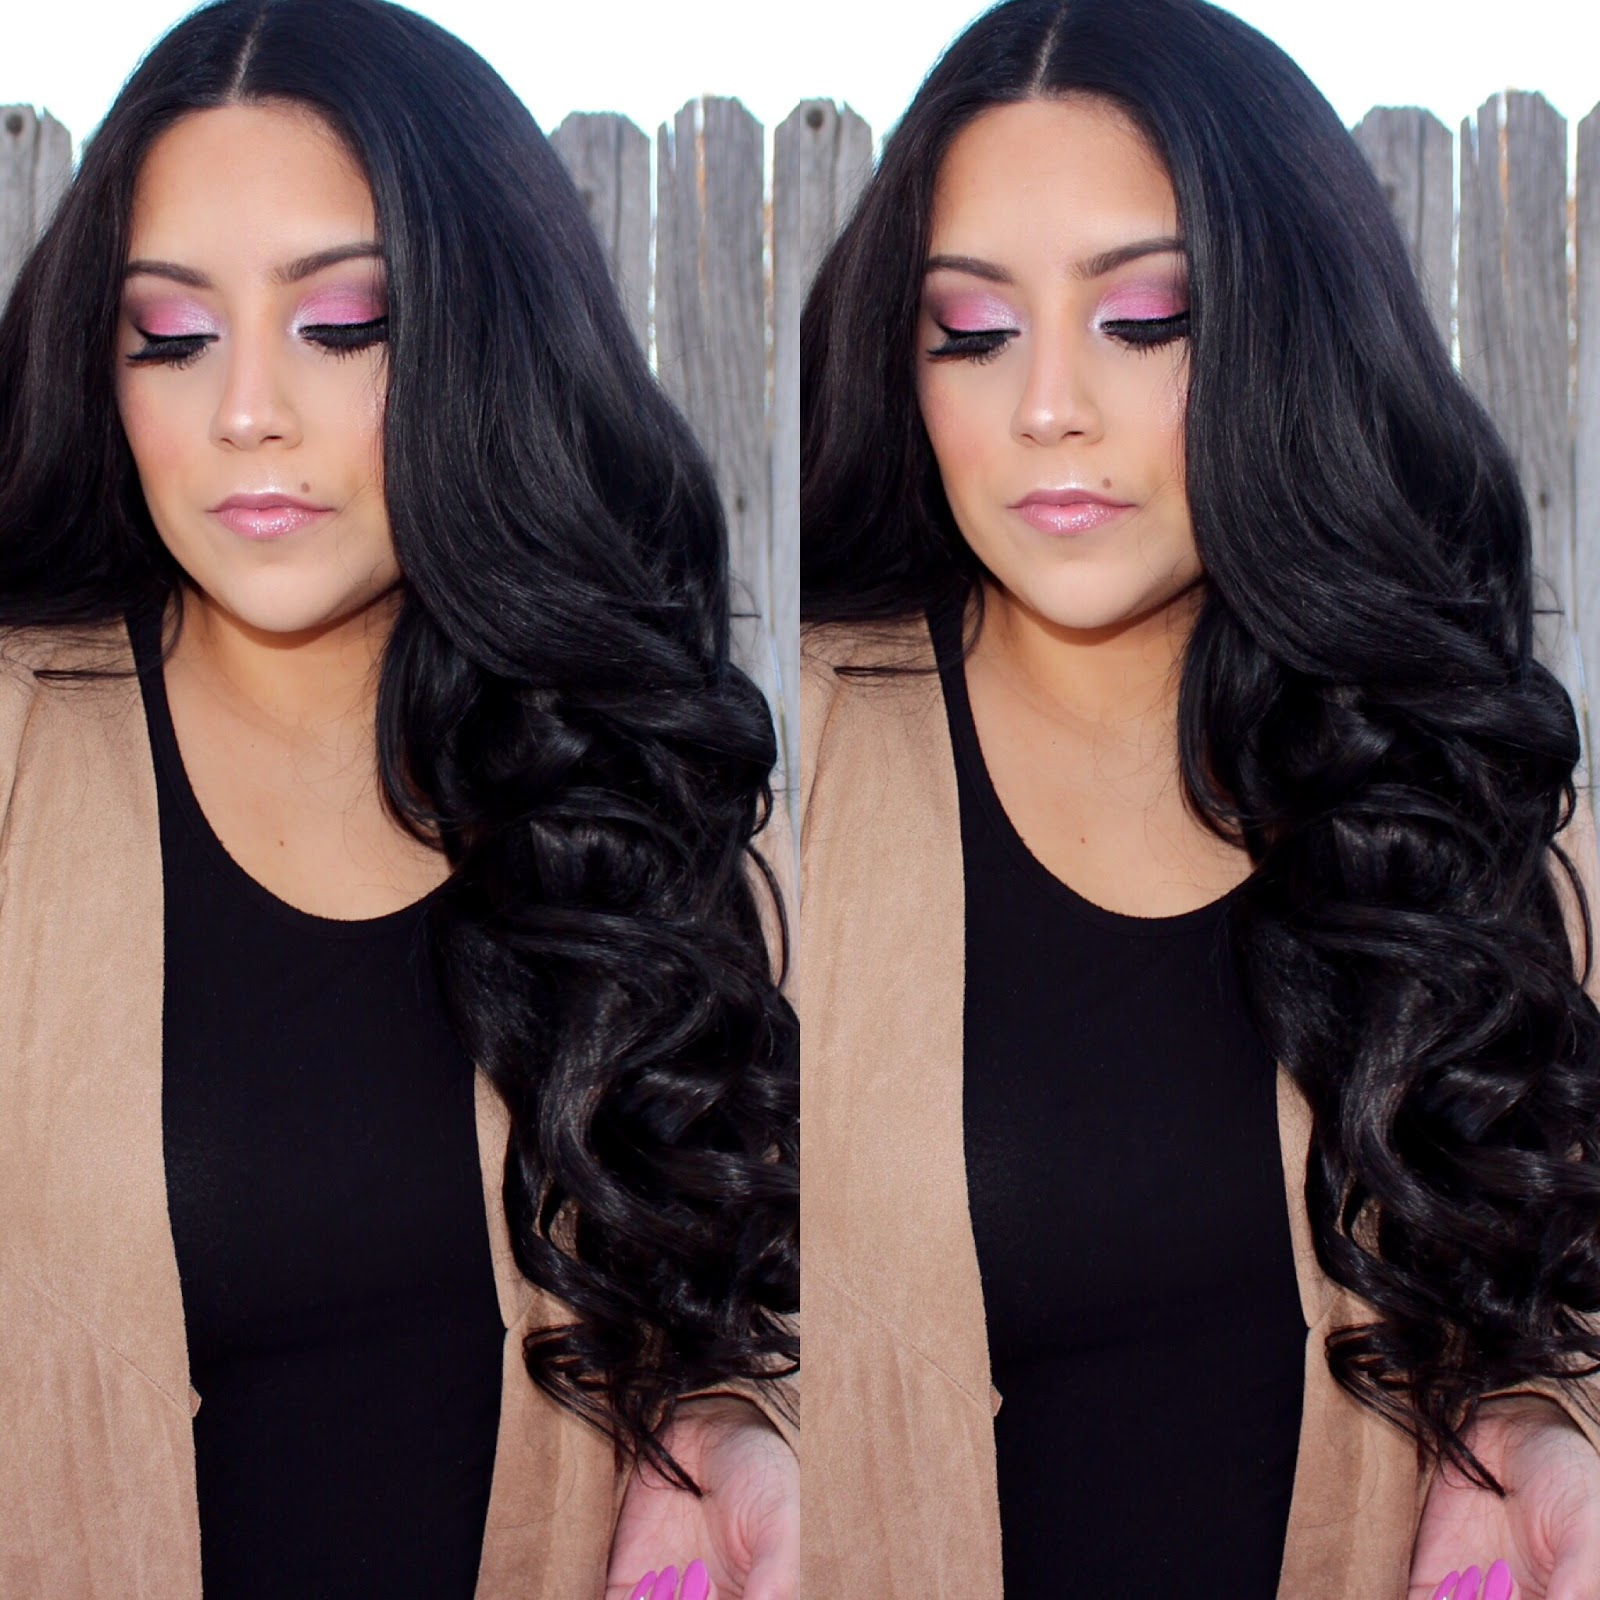 Makeup tutorial girly pink nati vergara littlemissnati bellami hair extensions in bellissima 220g off black use my code natalia for 5 off all extensions pmusecretfo Image collections